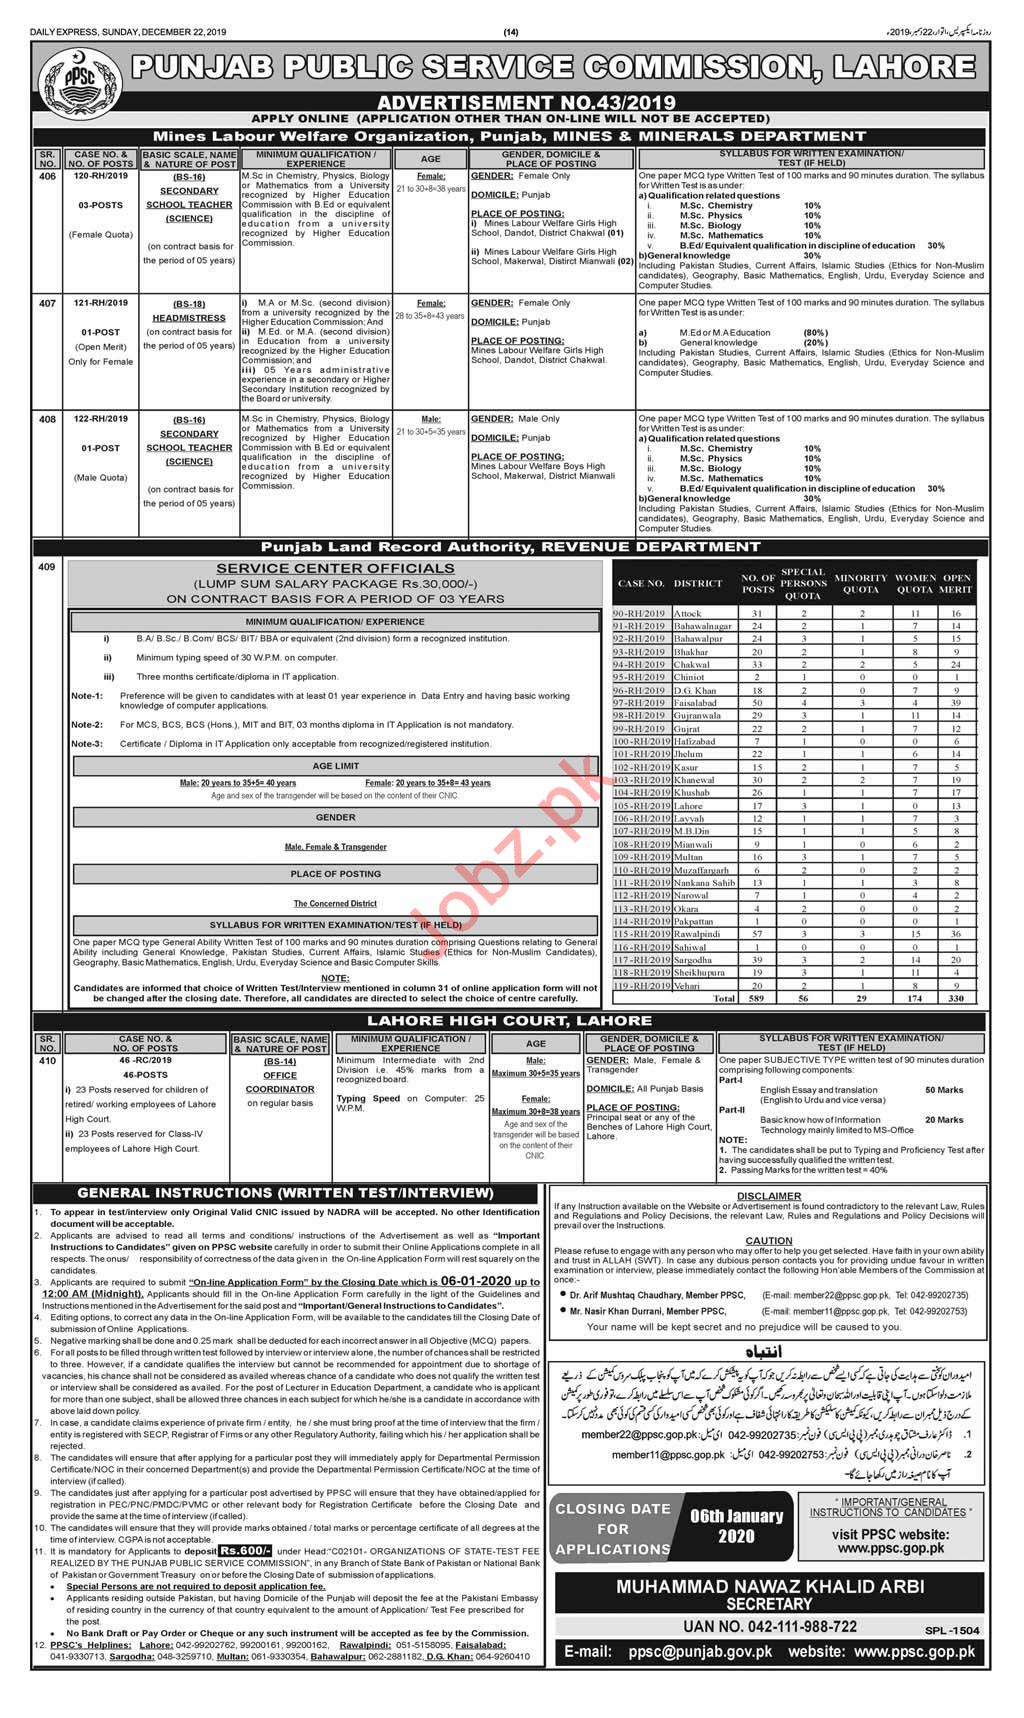 PPSC Jobs Advertisement 2020 in Lahore